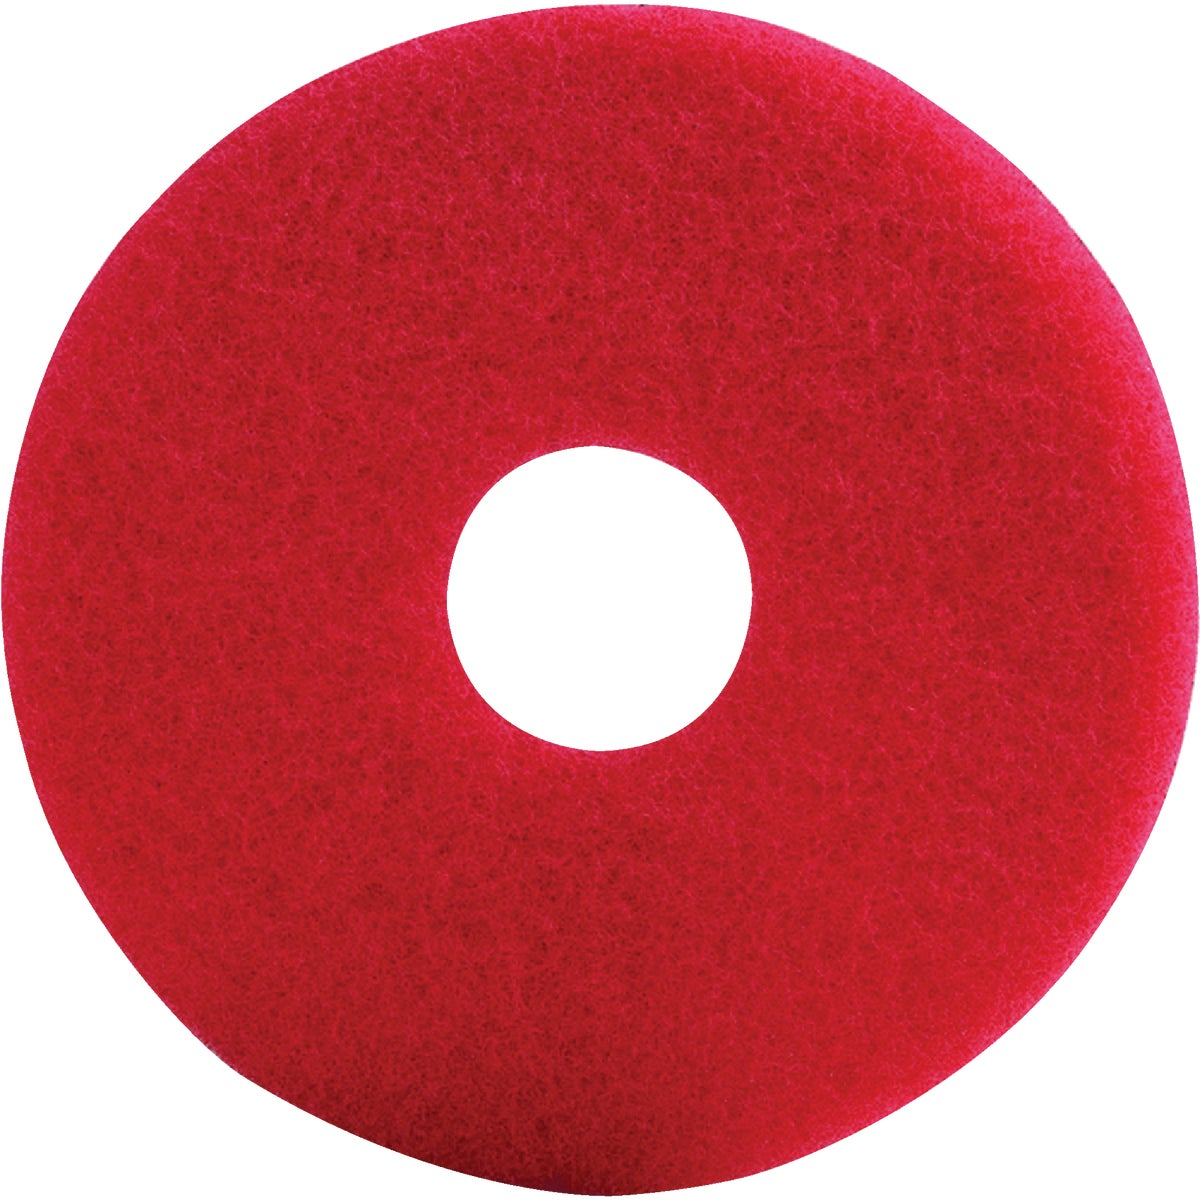 "20"" RED SCRUB PAD - TKL20R by Lundmark Wax Co"